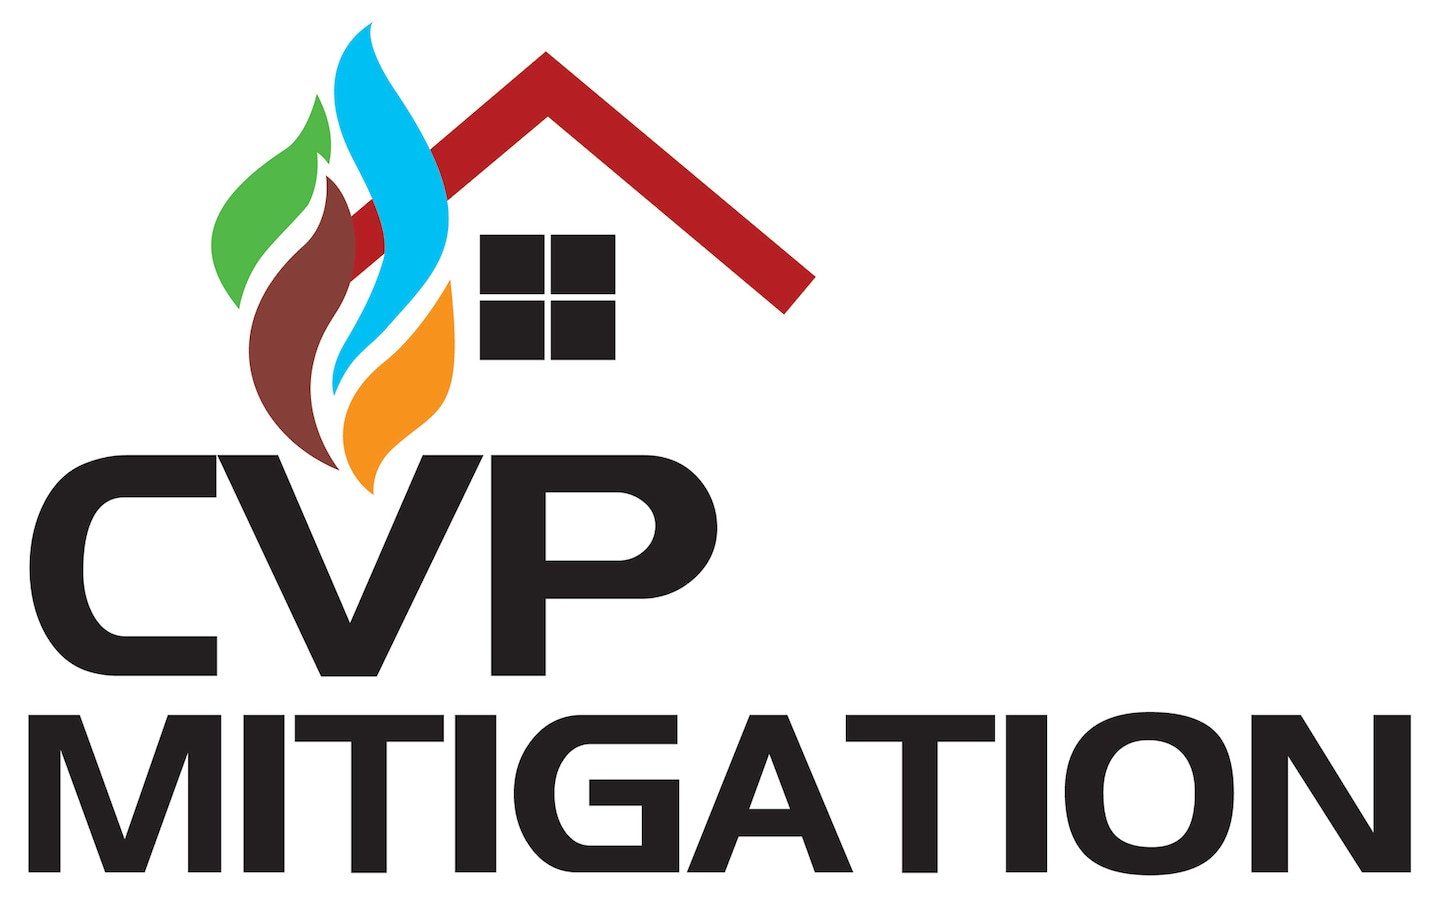 CVP Mitigation